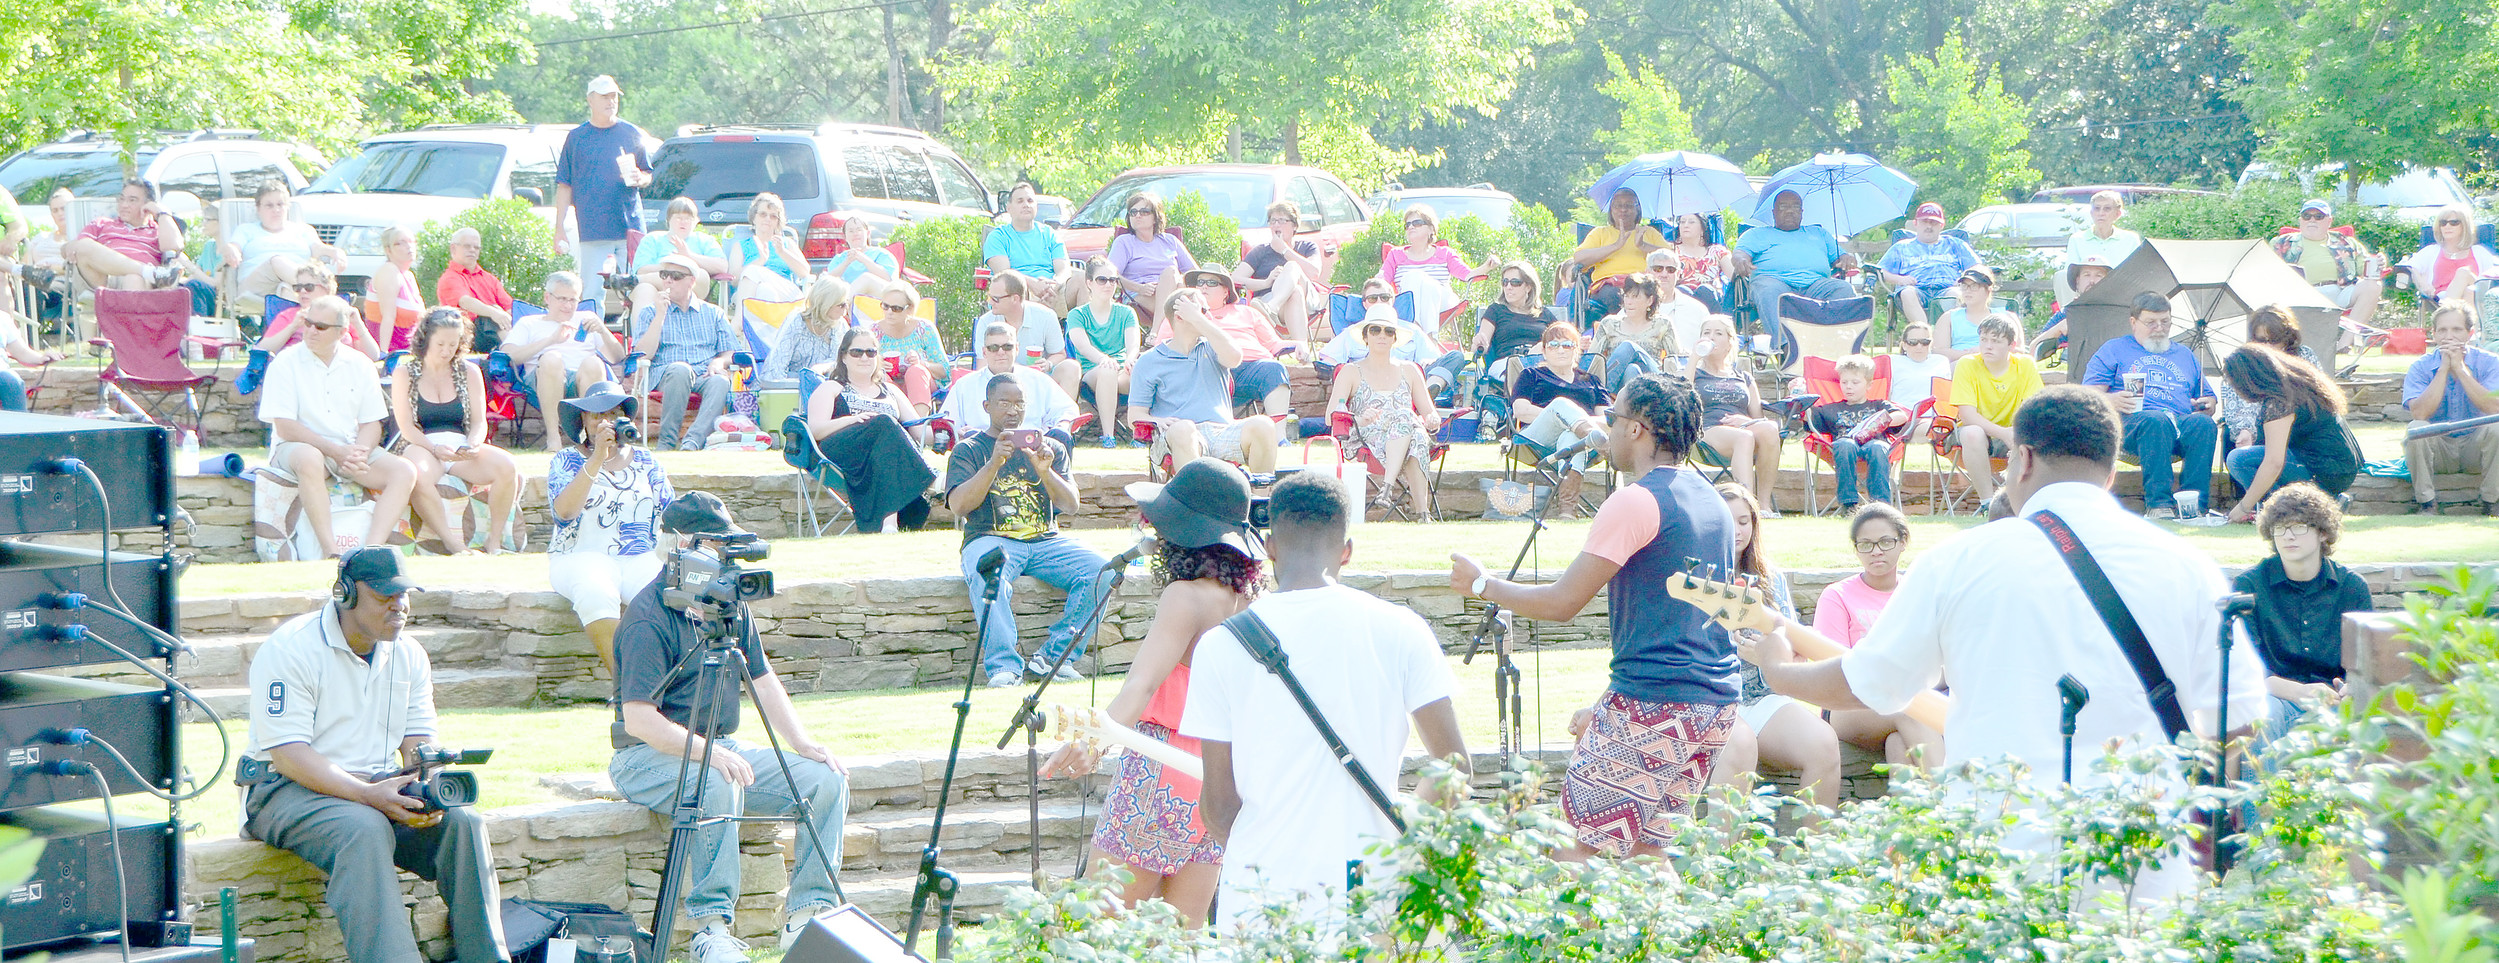 The Rubberband Effect performs at Jazz in the Park in 2015. The event, typically held Memorial Day weekend at the Bankhead House and Heritage Center, kicks off the Walker Area Community Foundation's summer concert series. File photo - Ron Harris